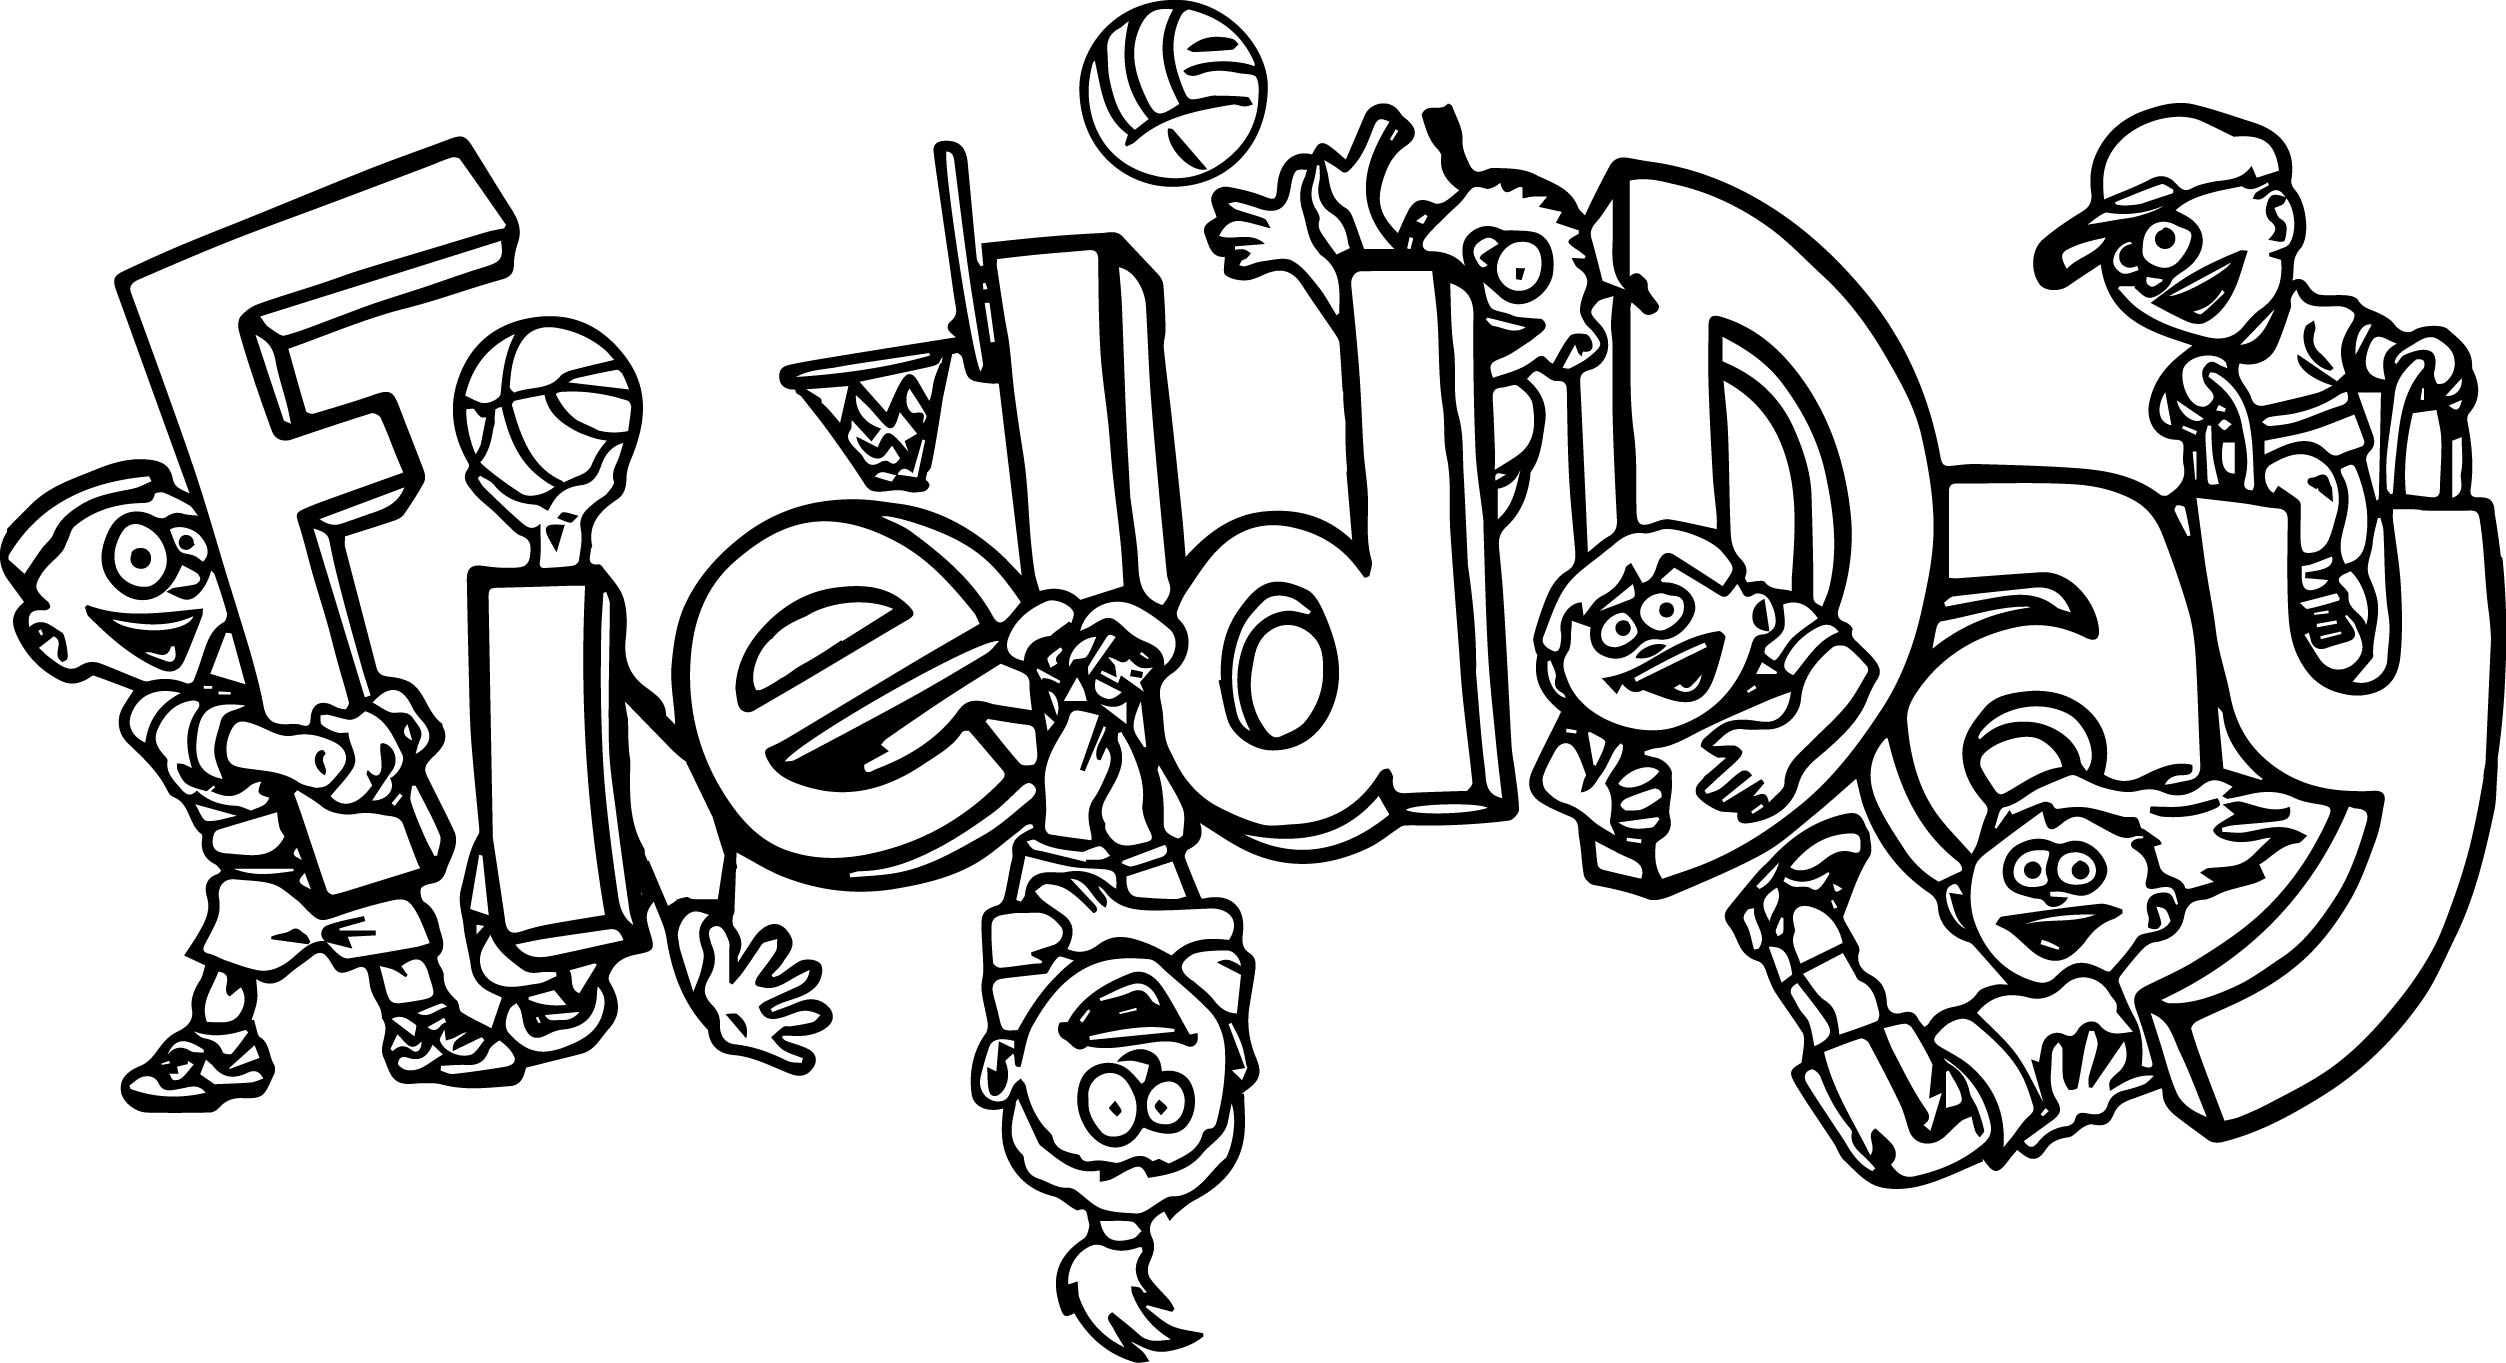 100 Days Of School Field Day Coloring Page Coloring Page Day Of School Coloring Pages